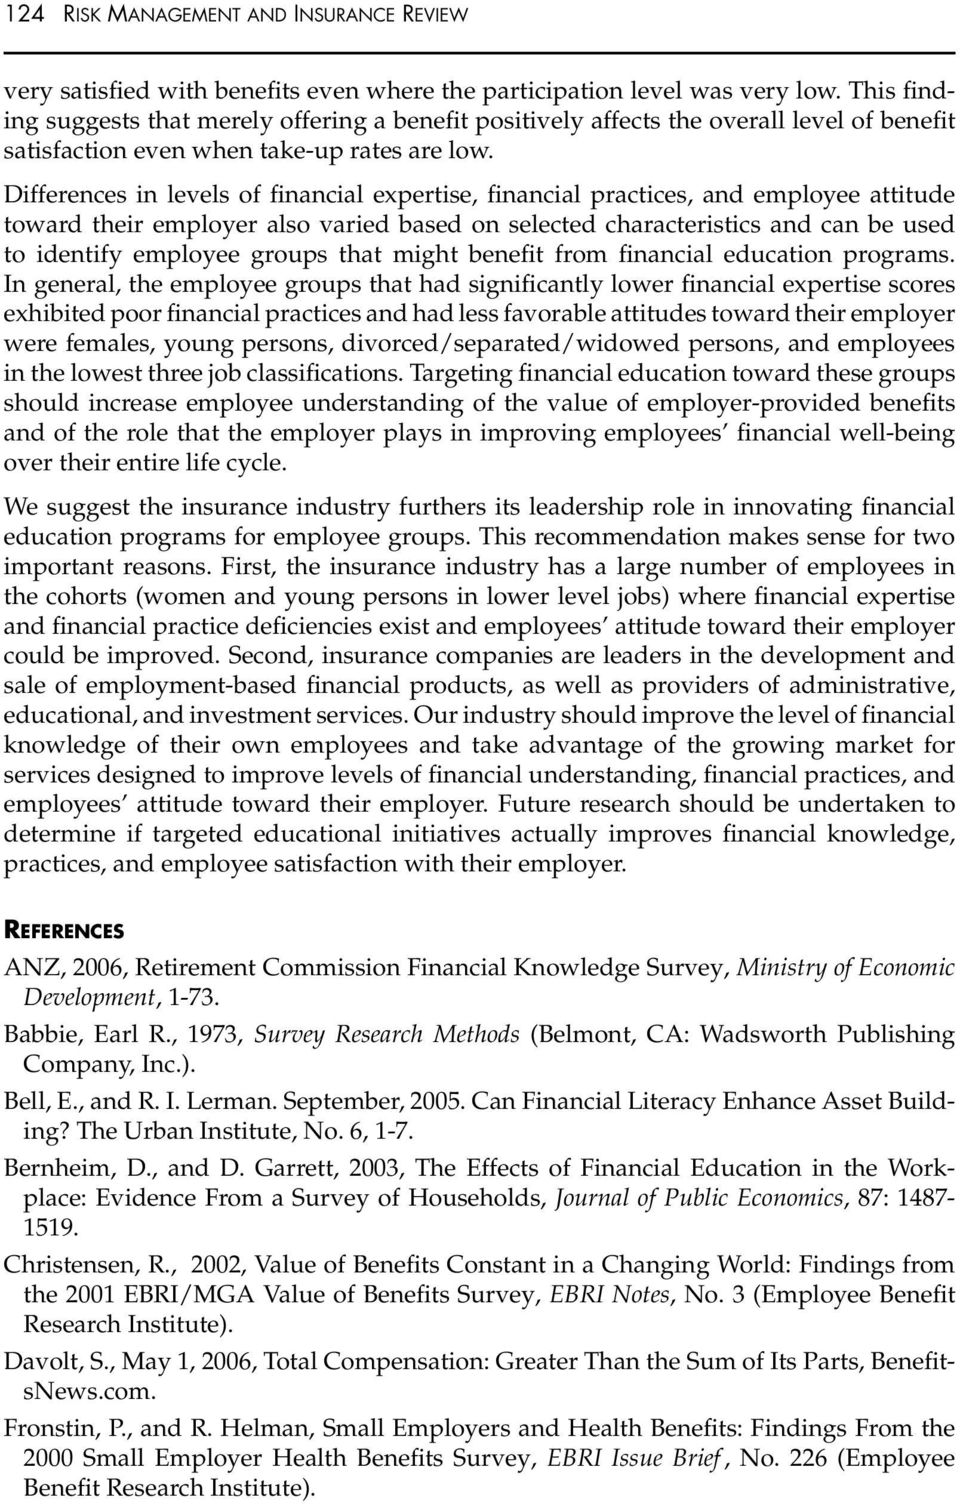 Differences in levels of financial expertise, financial practices, and employee attitude toward their employer also varied based on selected characteristics and can be used to identify employee